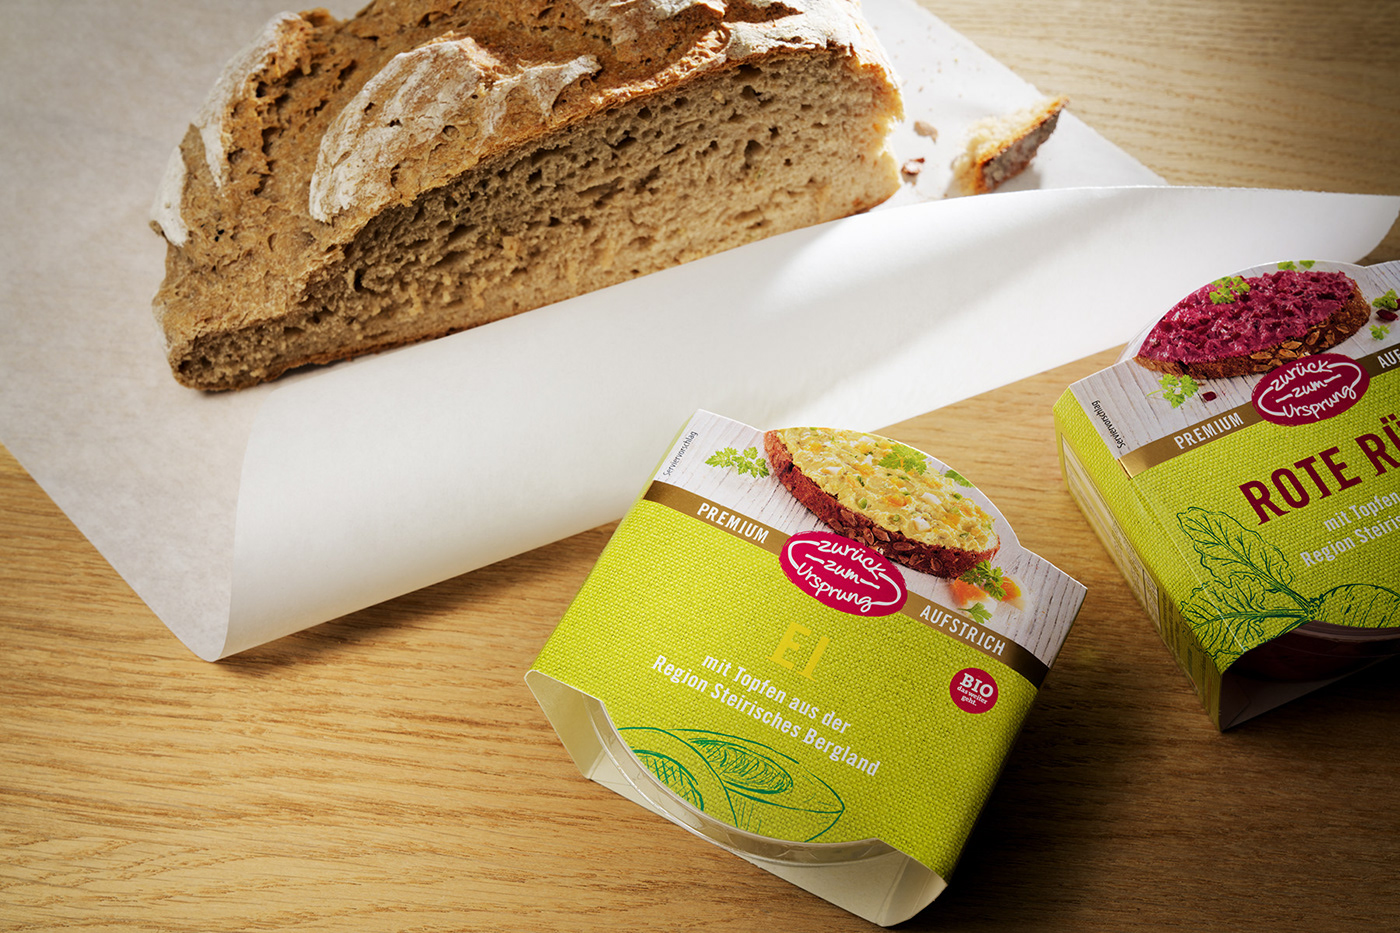 graphicdesign healthy healthyfood organic organicfood Packaging packagingdesign printdesign wirsindartisten